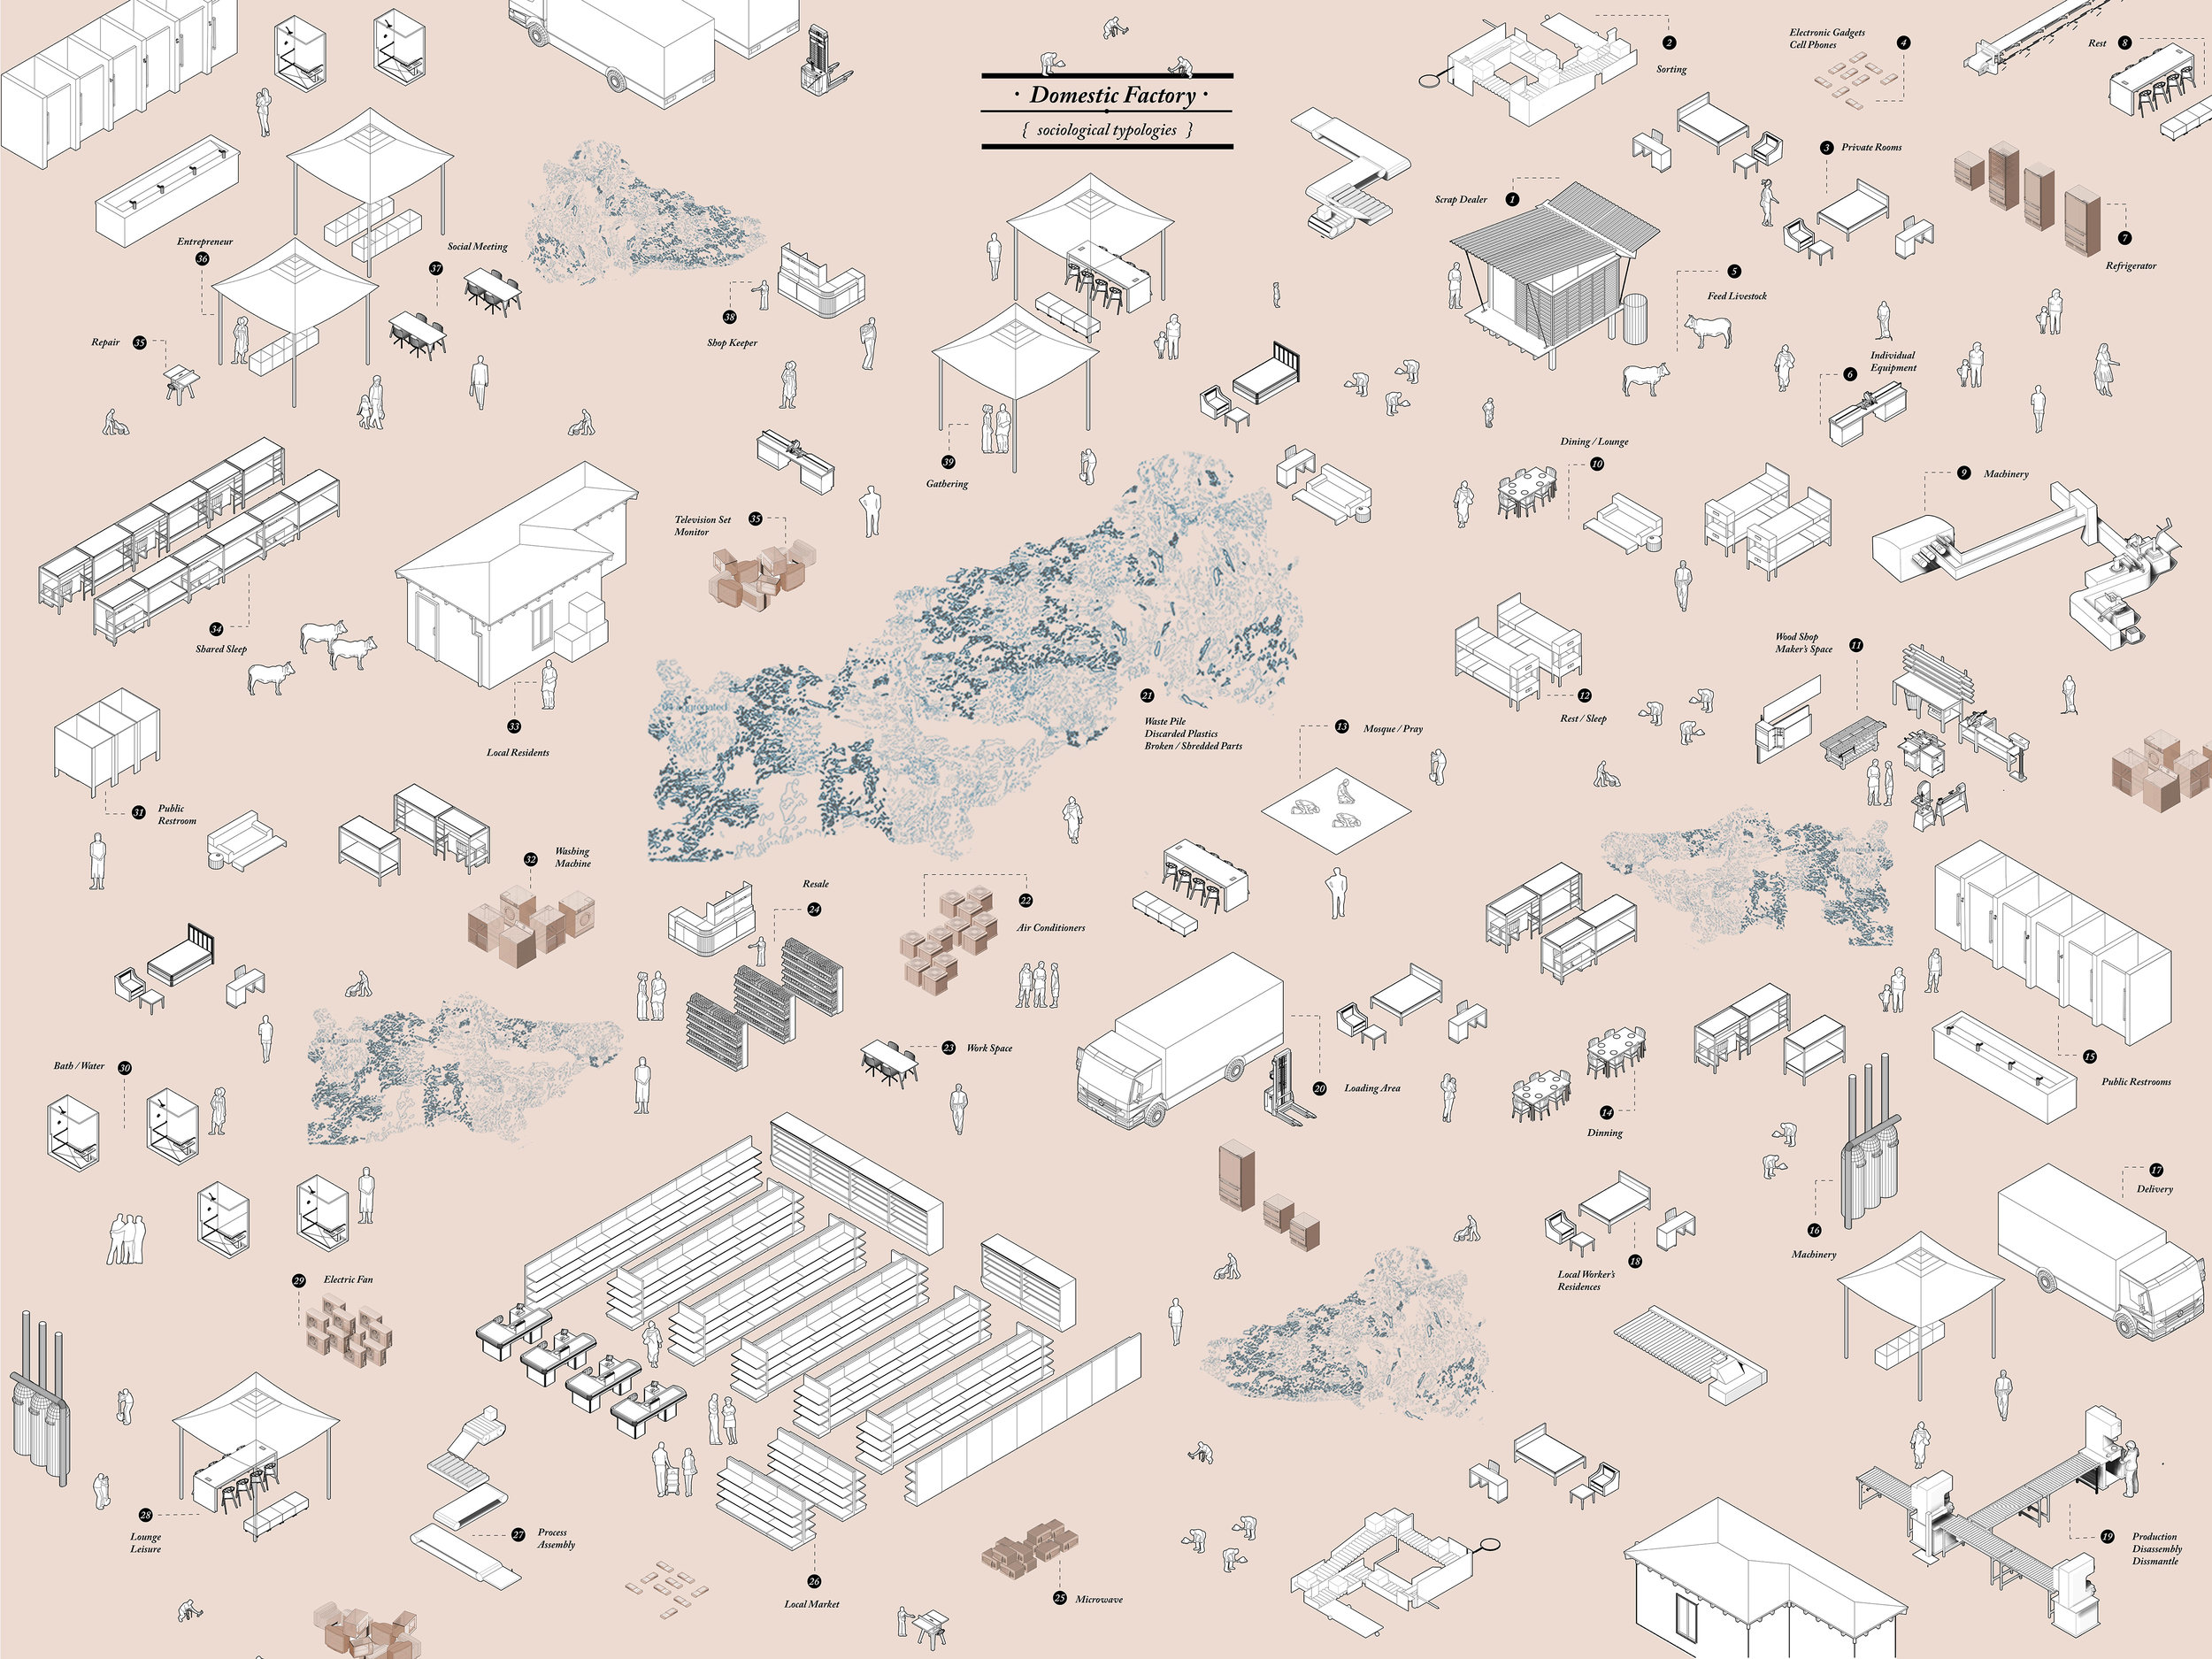 04_Domestic Factory Sociological Typologies-small.jpg